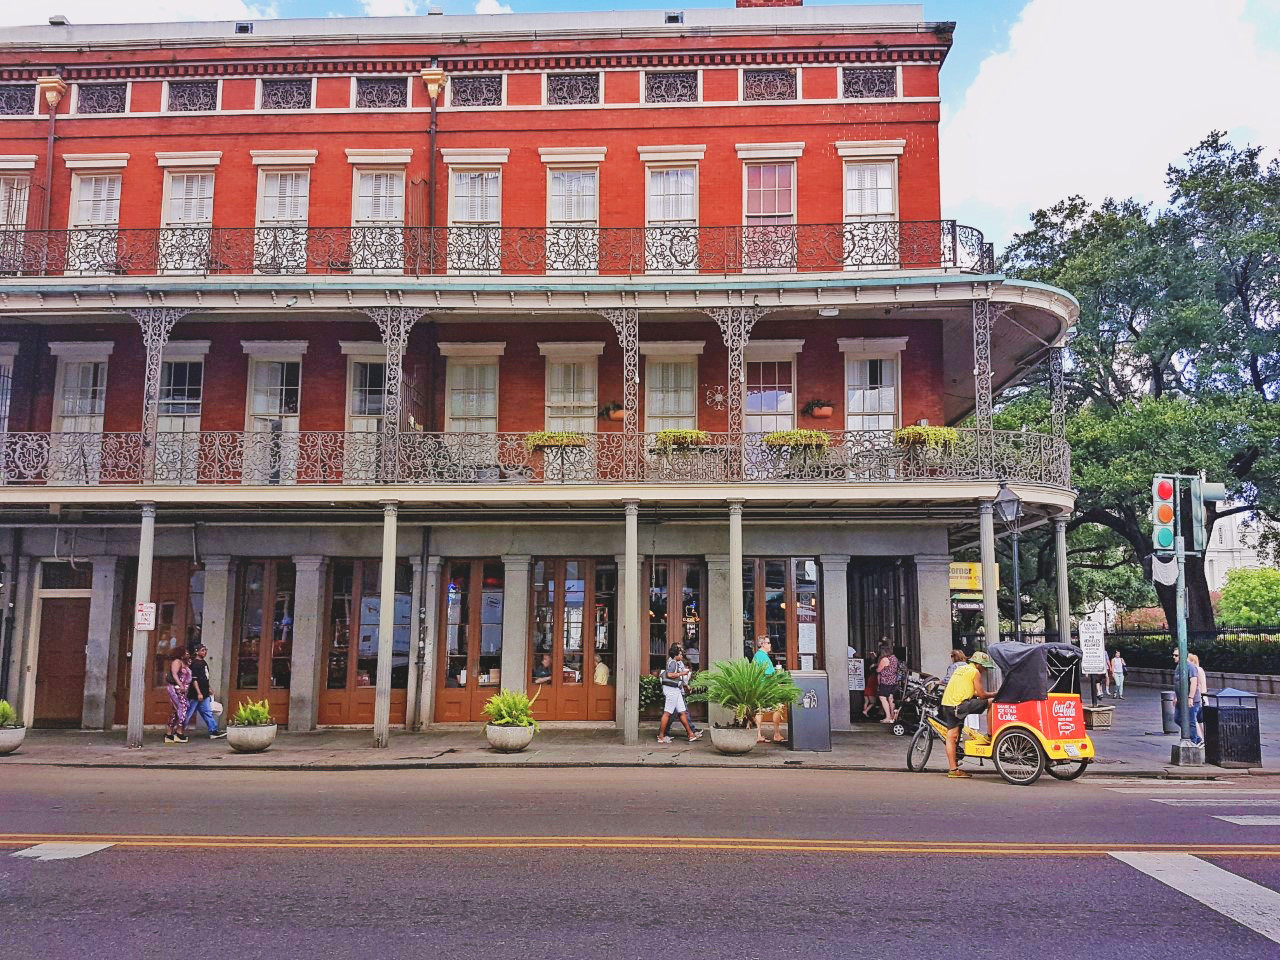 New Orleans, Louisiana, travel, summer, French quarter, balcony, tourist, blogger